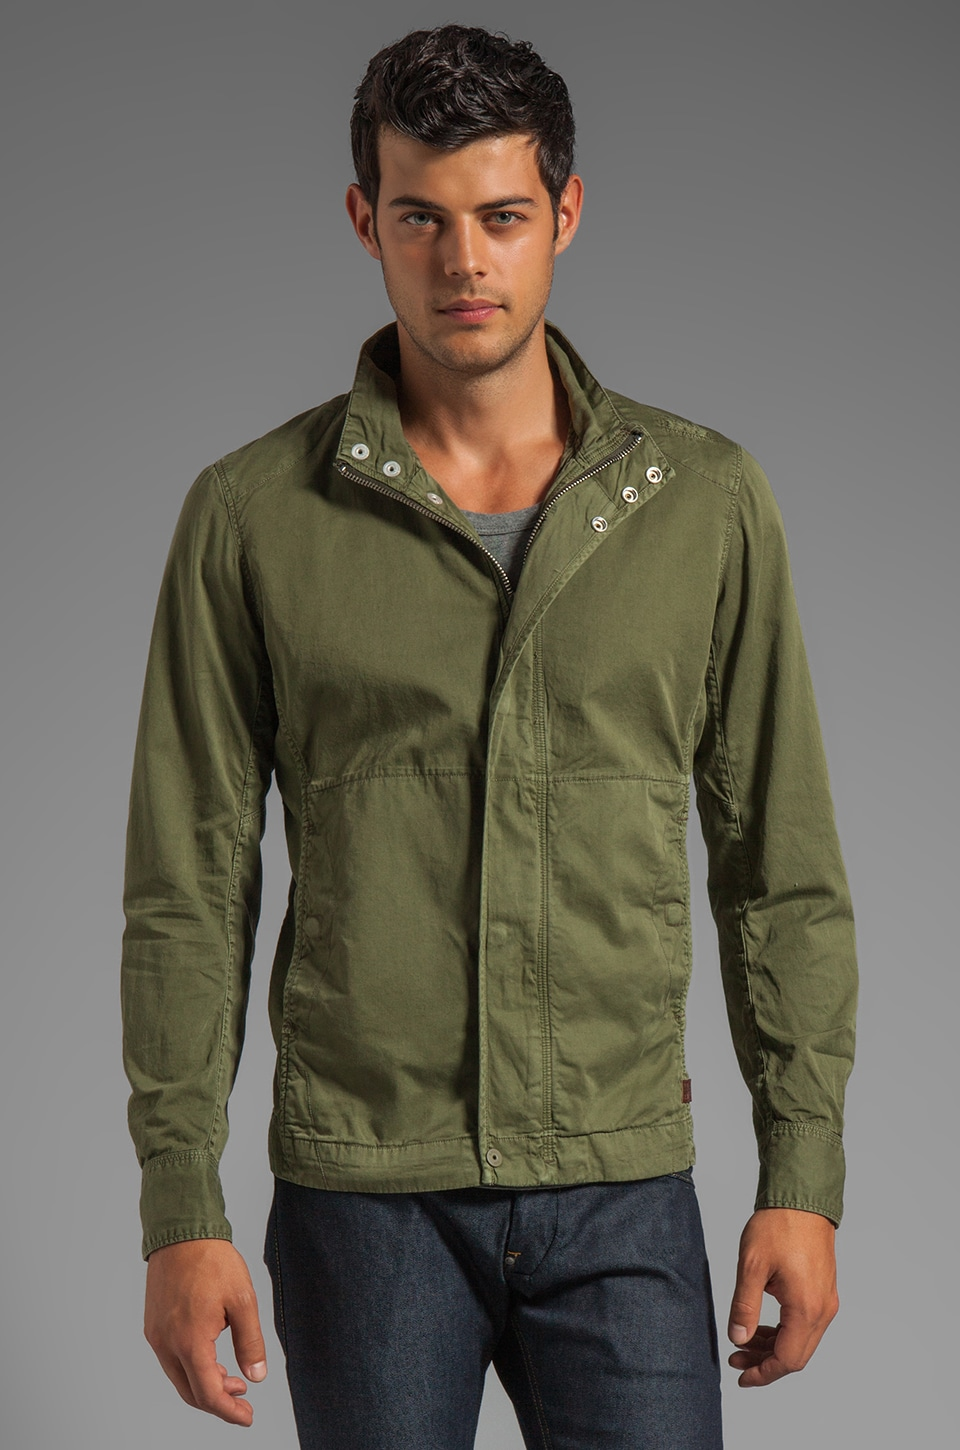 G-Star Dutton Overshirt Jacket in Sage